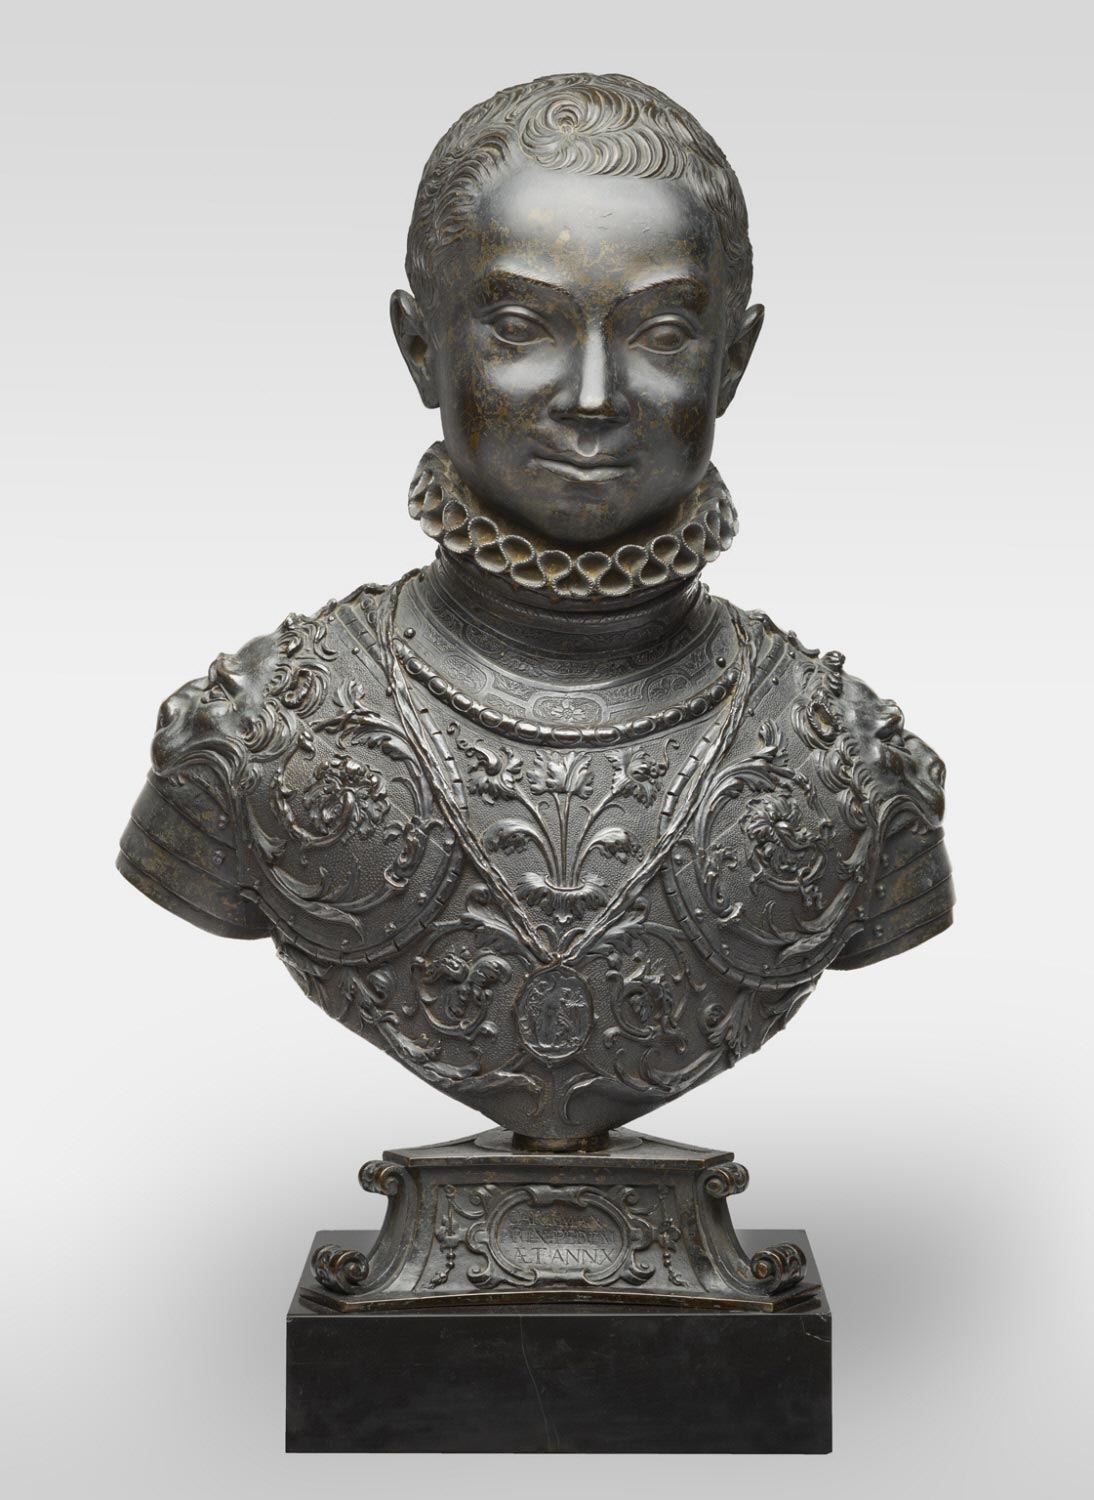 Bust of Carlo Emanuele of Savoy at Ten Years of Age